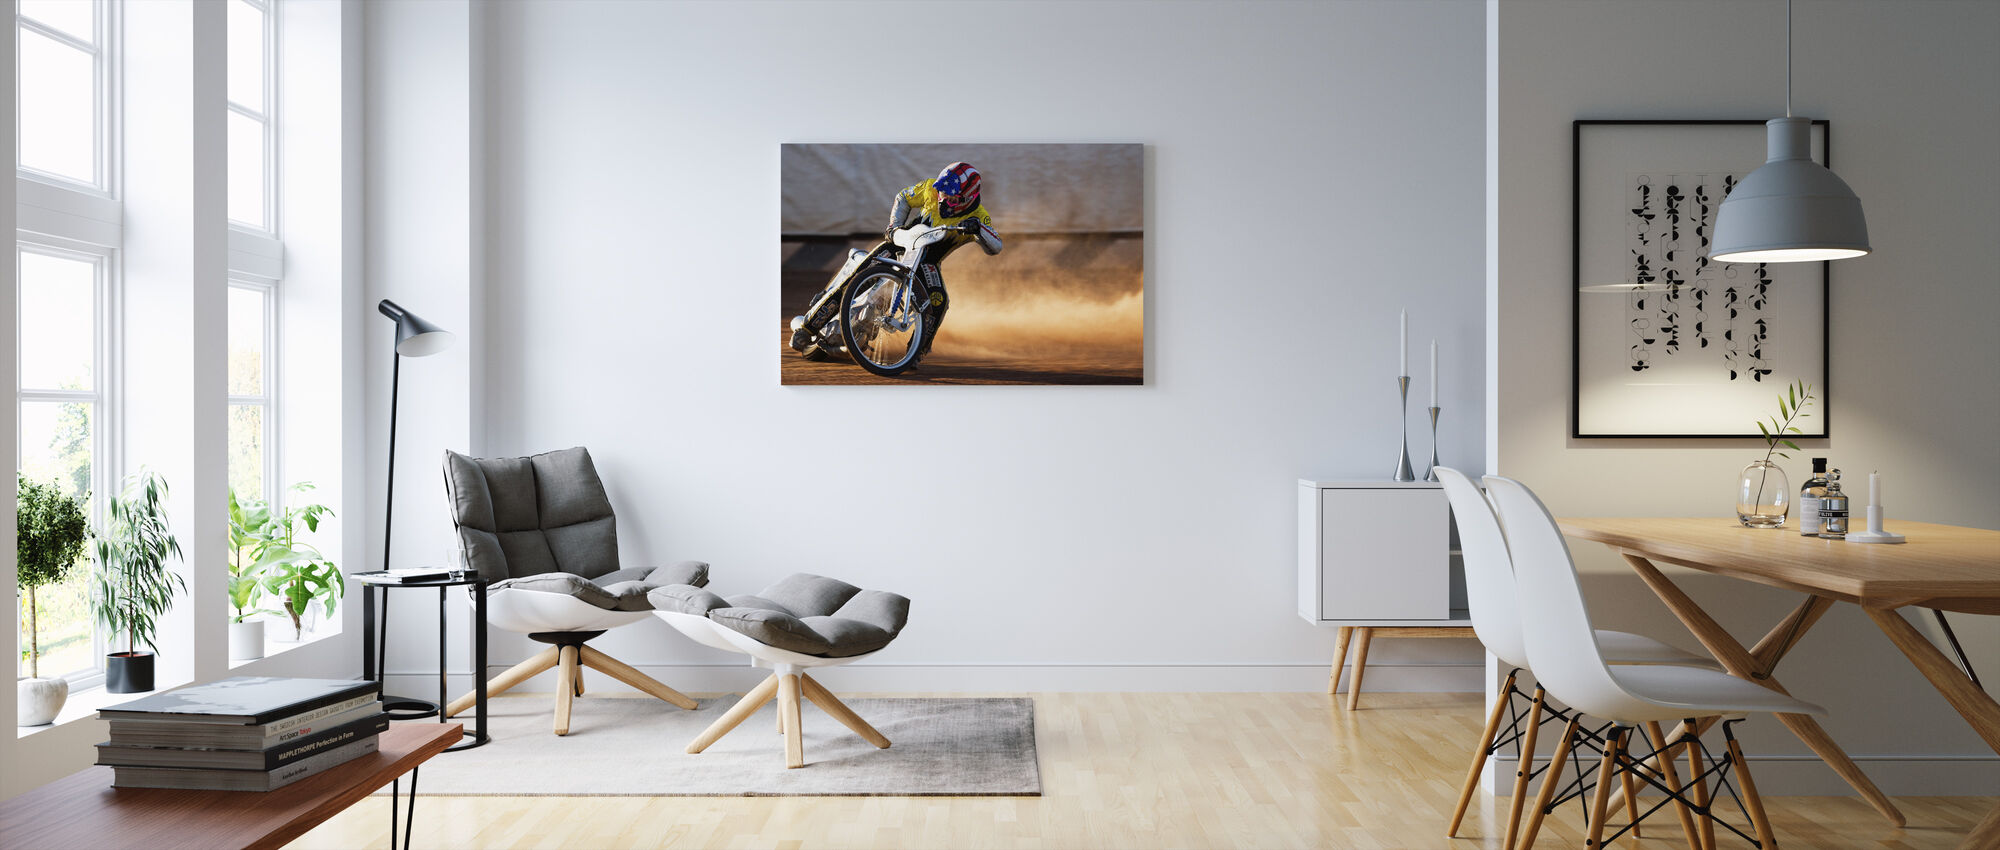 Going Sideways - Canvas print - Living Room